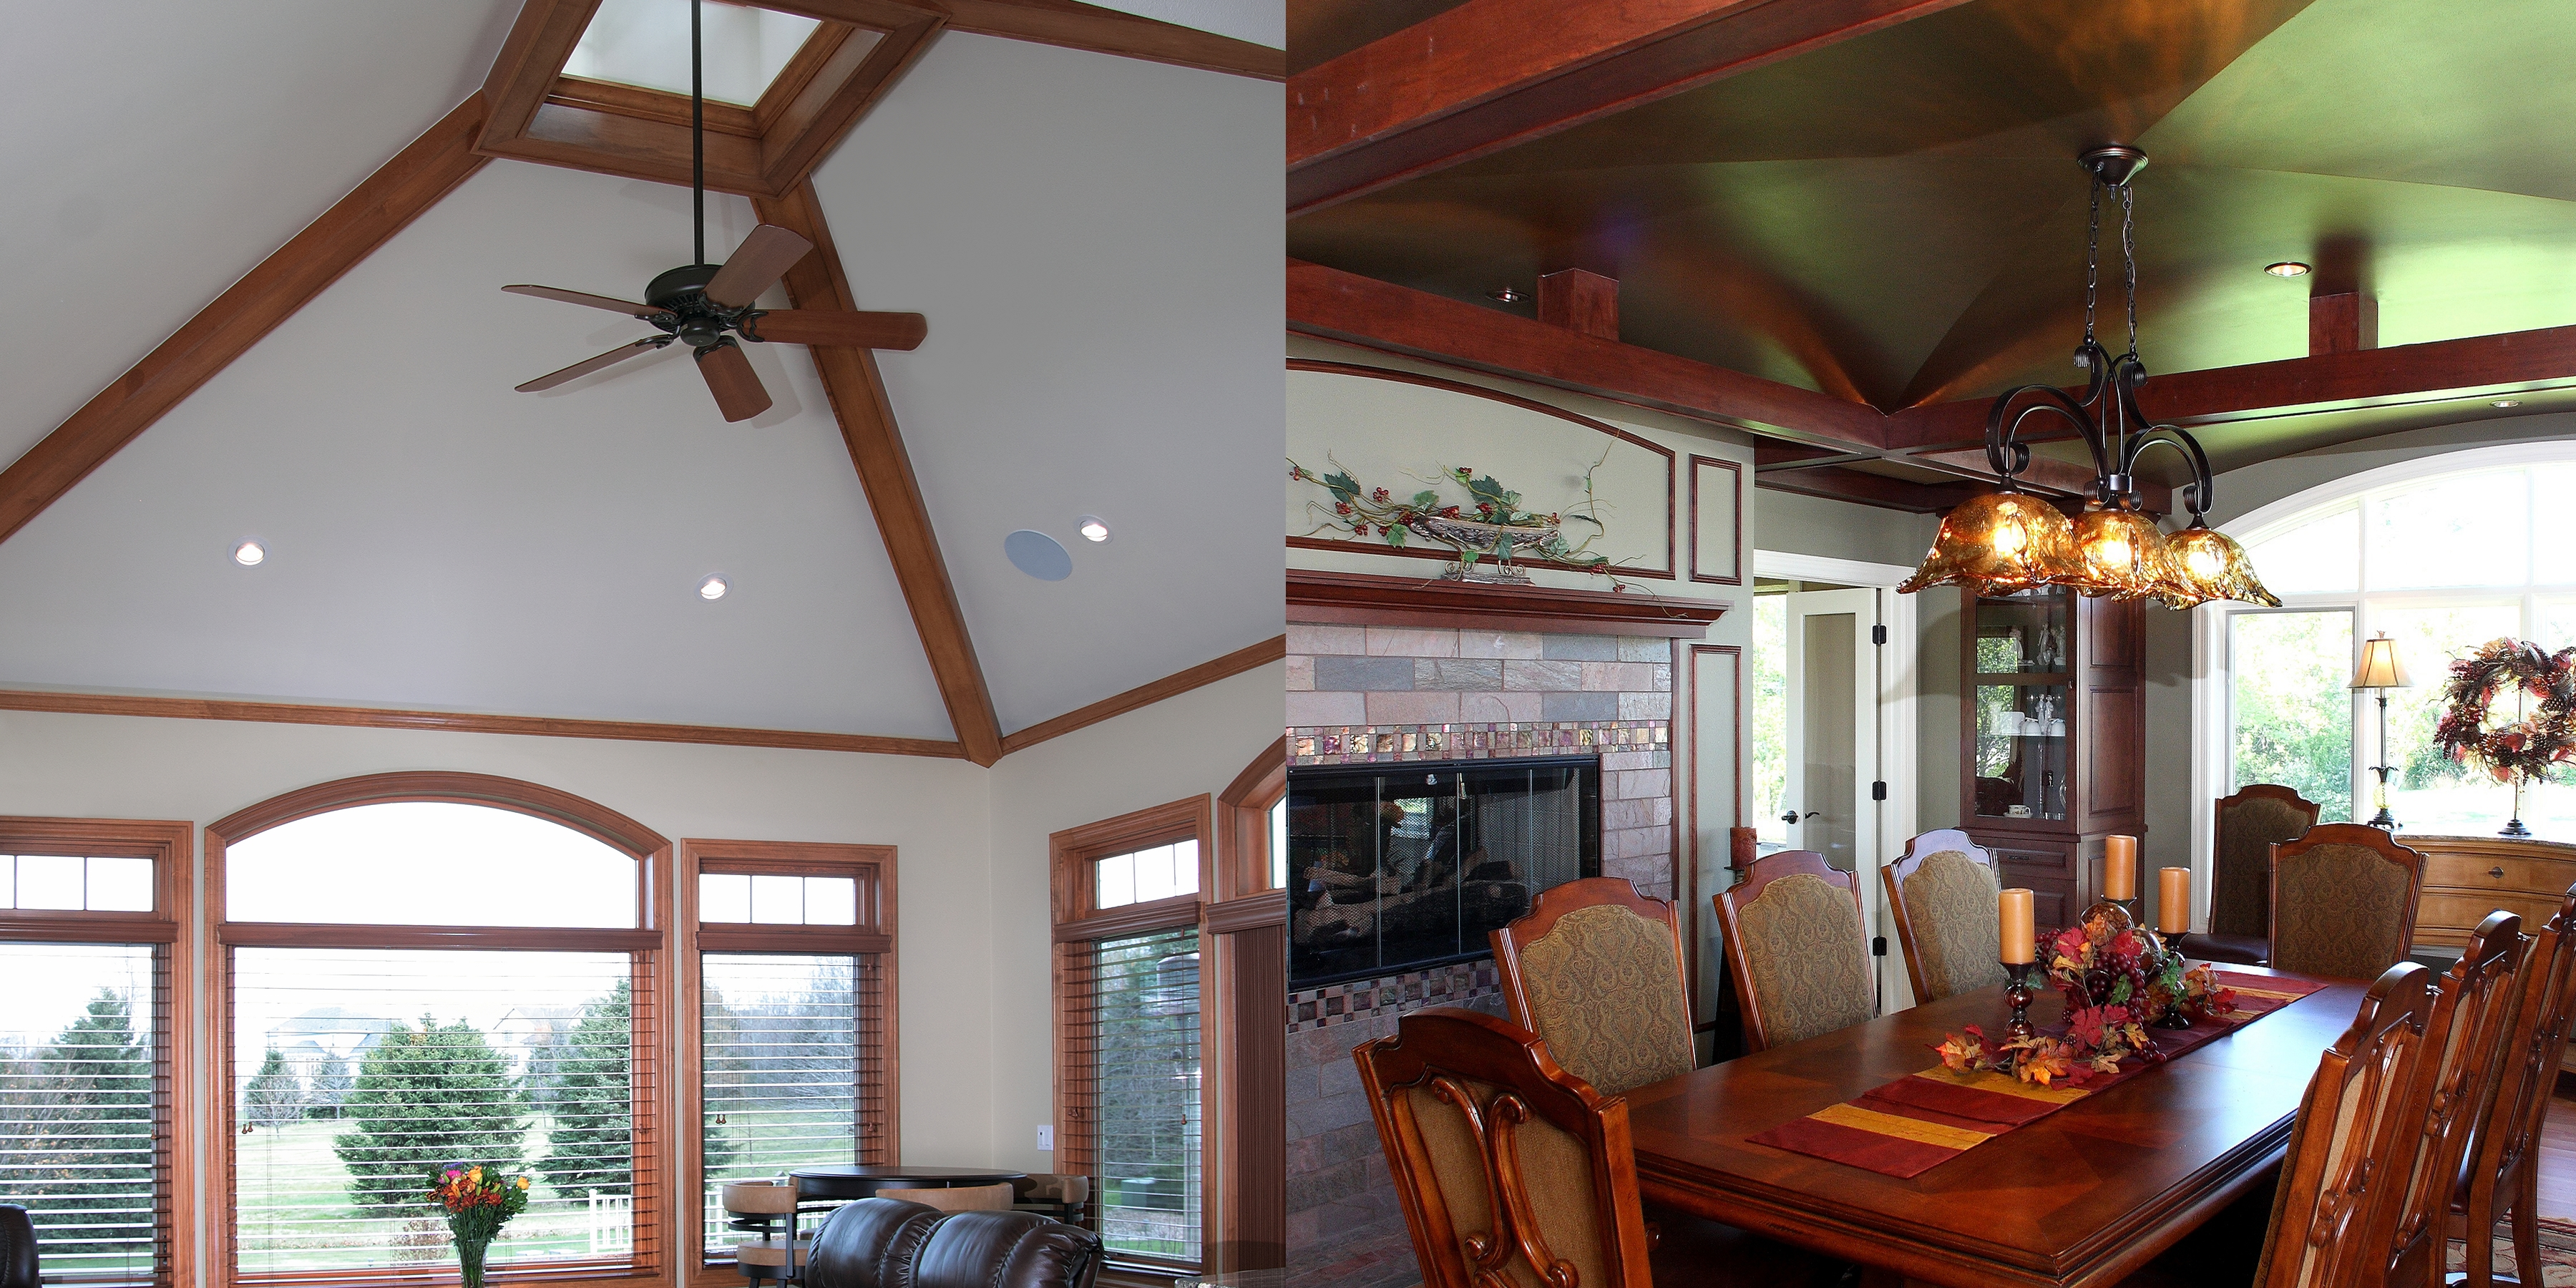 Ceiling design bartelt the remodeling resource for Vaulted ceiling plans